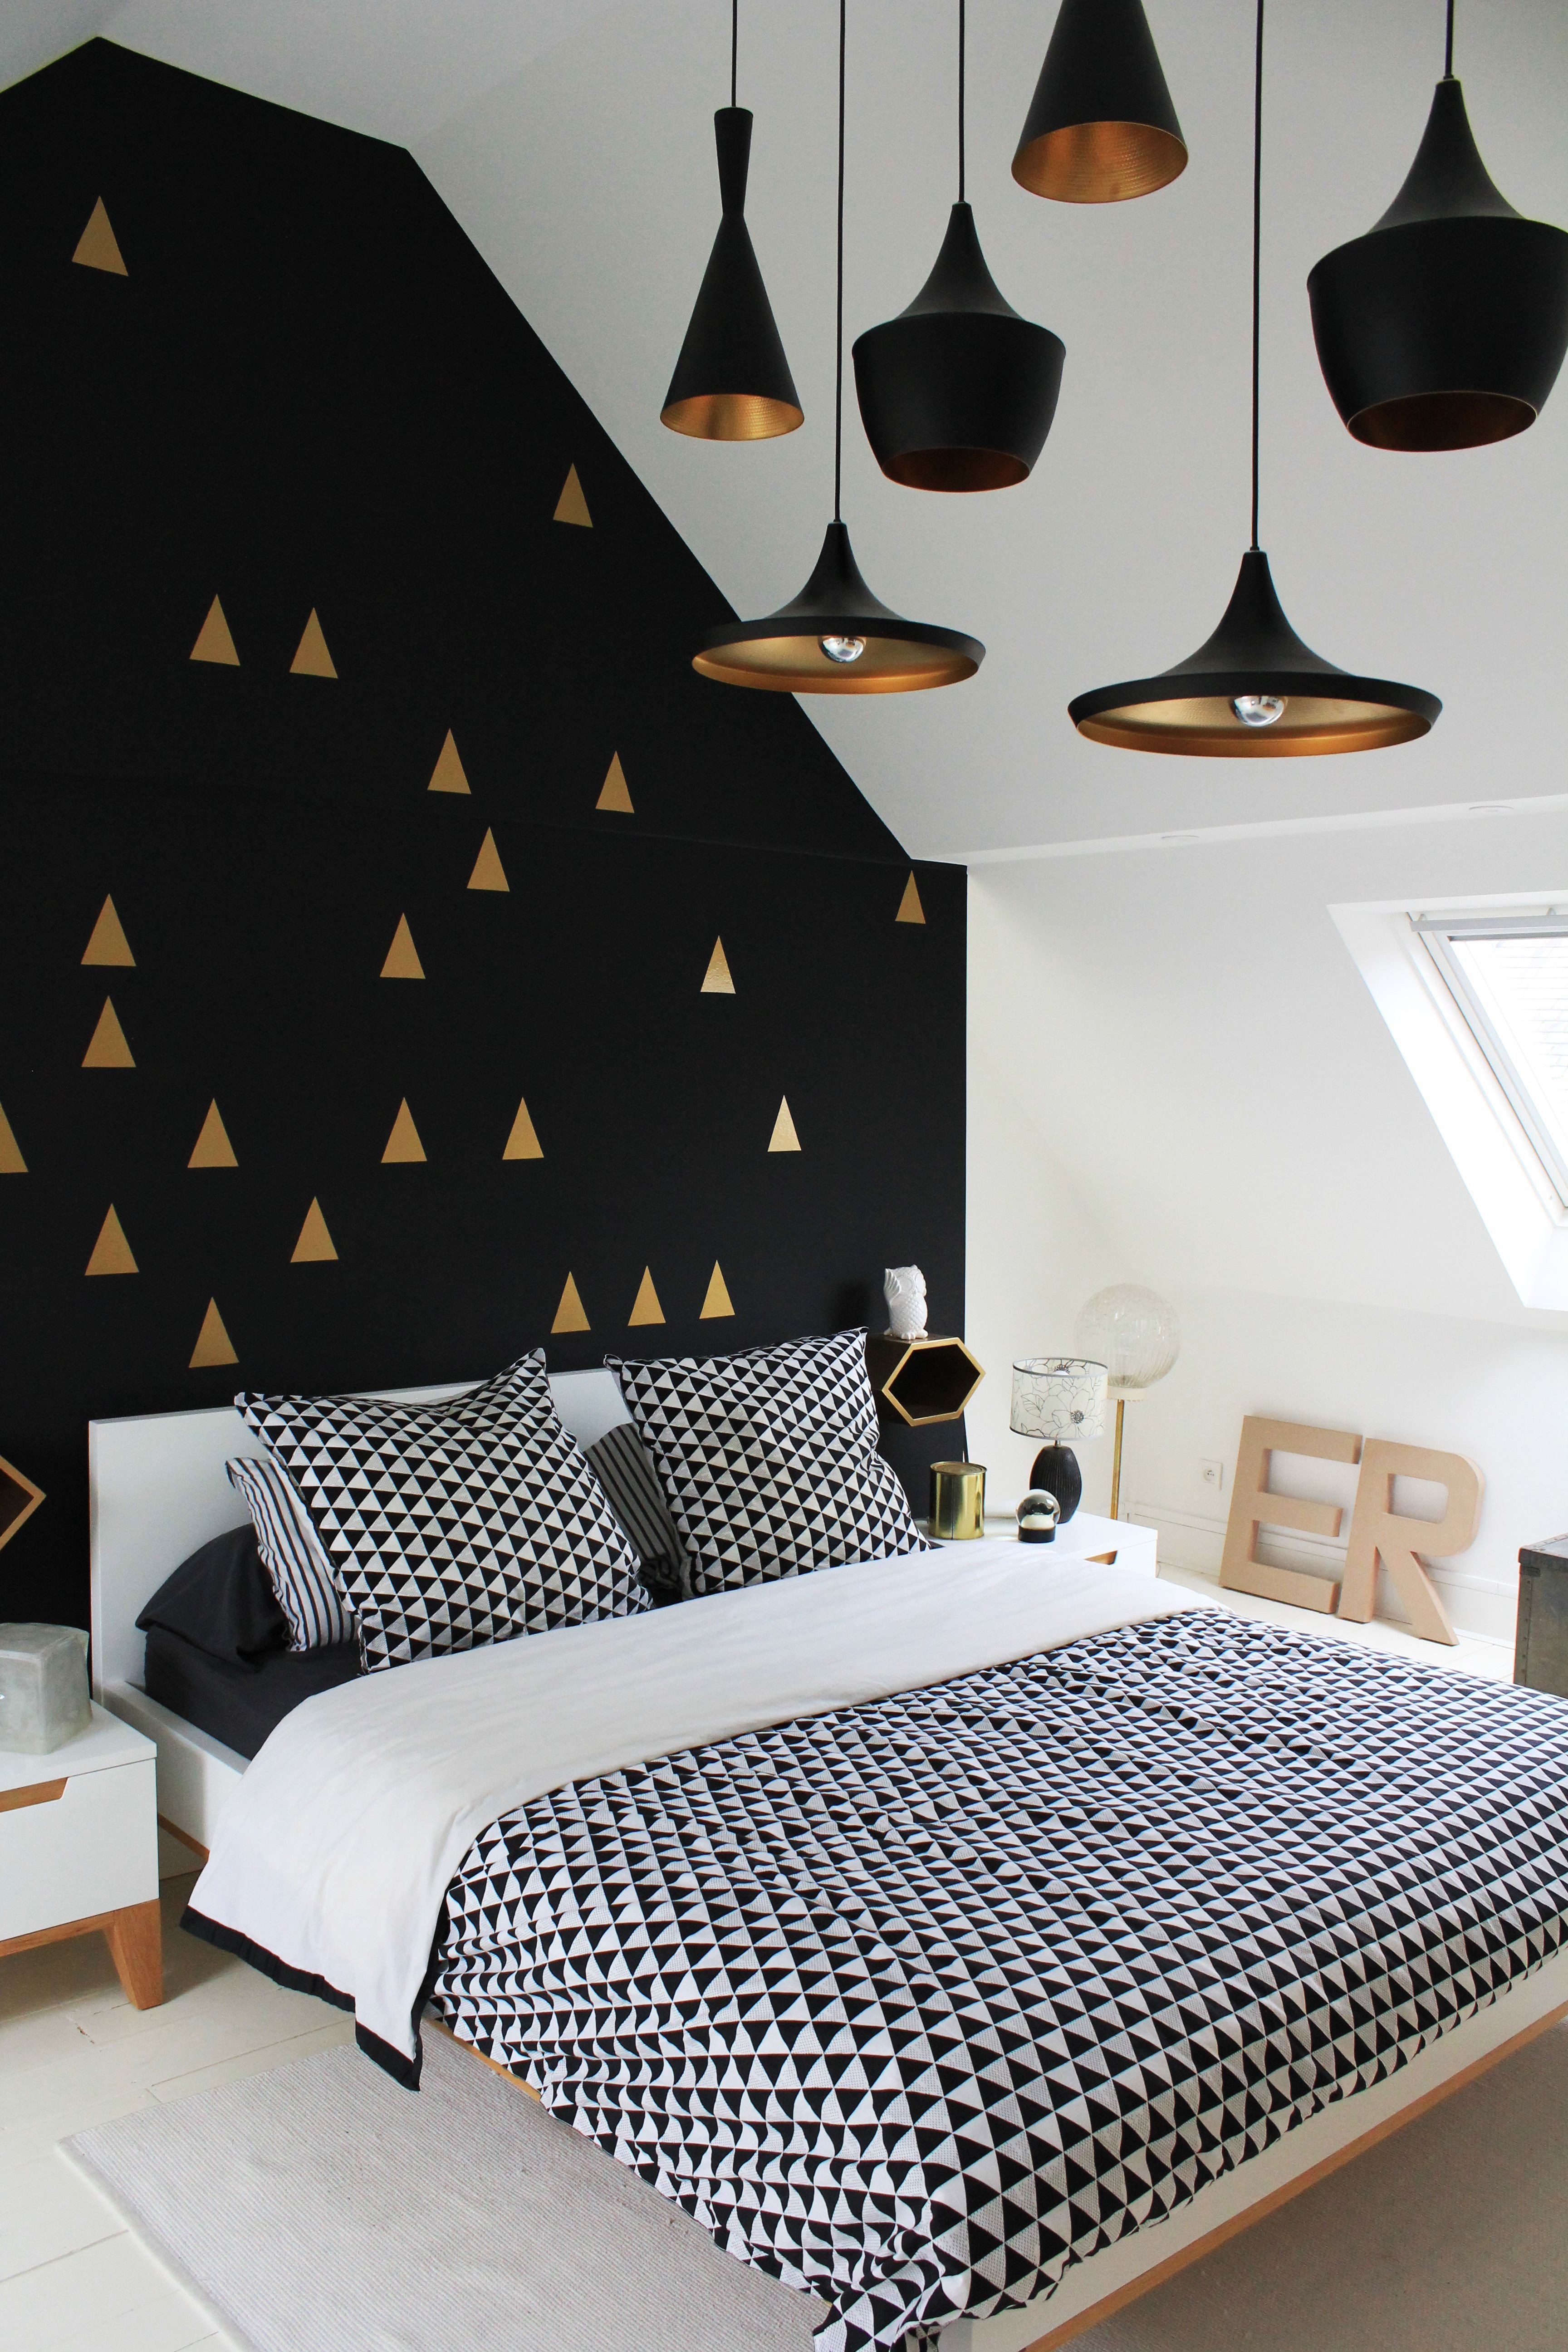 Black White Gold Bedroom Awesome Bedroom White Gold and Black Interior Love the Wall and